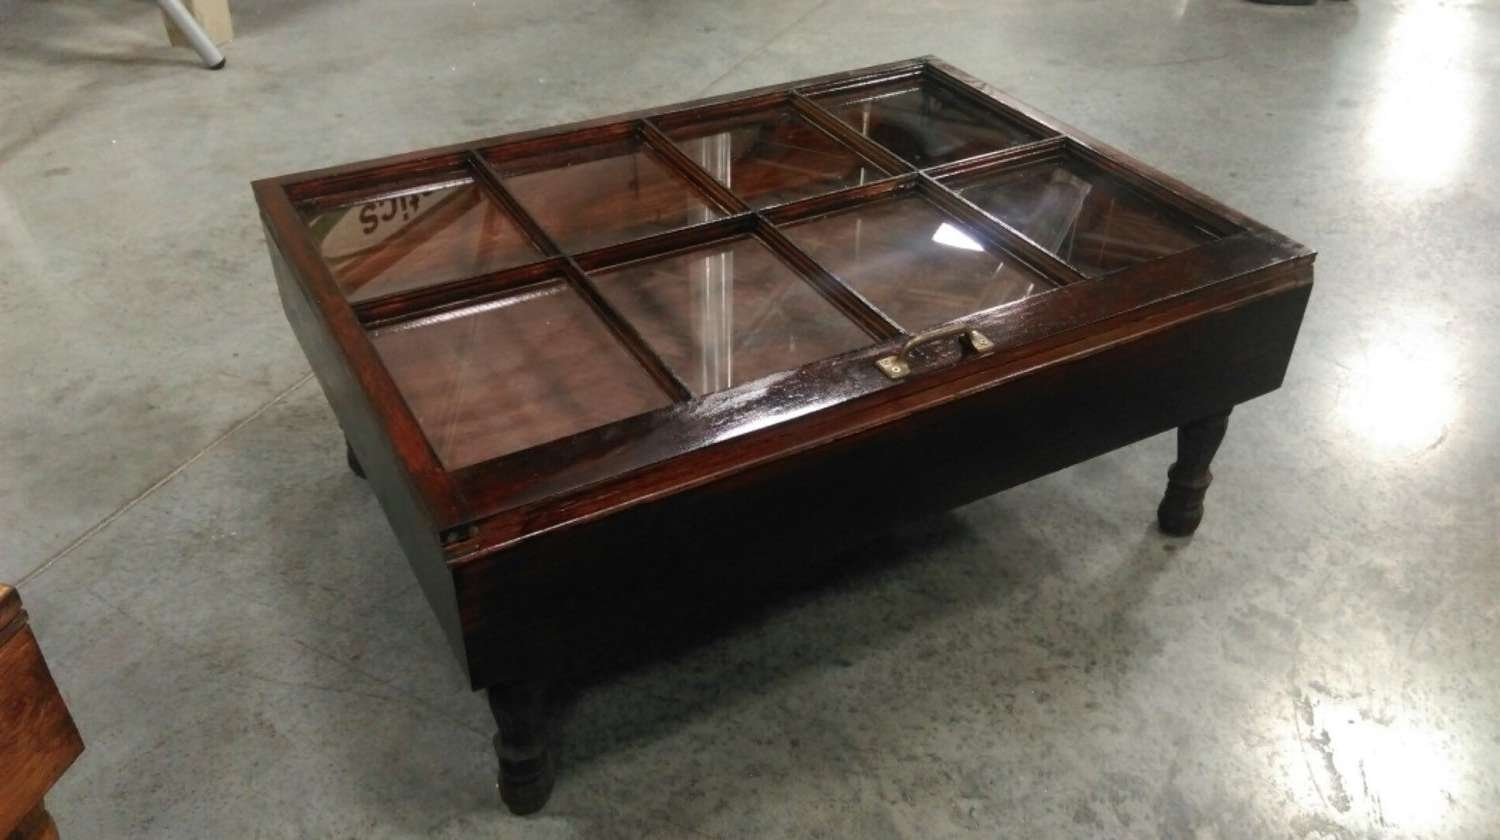 2018 Glass Top Storage Coffee Tables In Wood Shadow Box Coffee Table Mahogany Shadow Box Table (View 16 of 20)